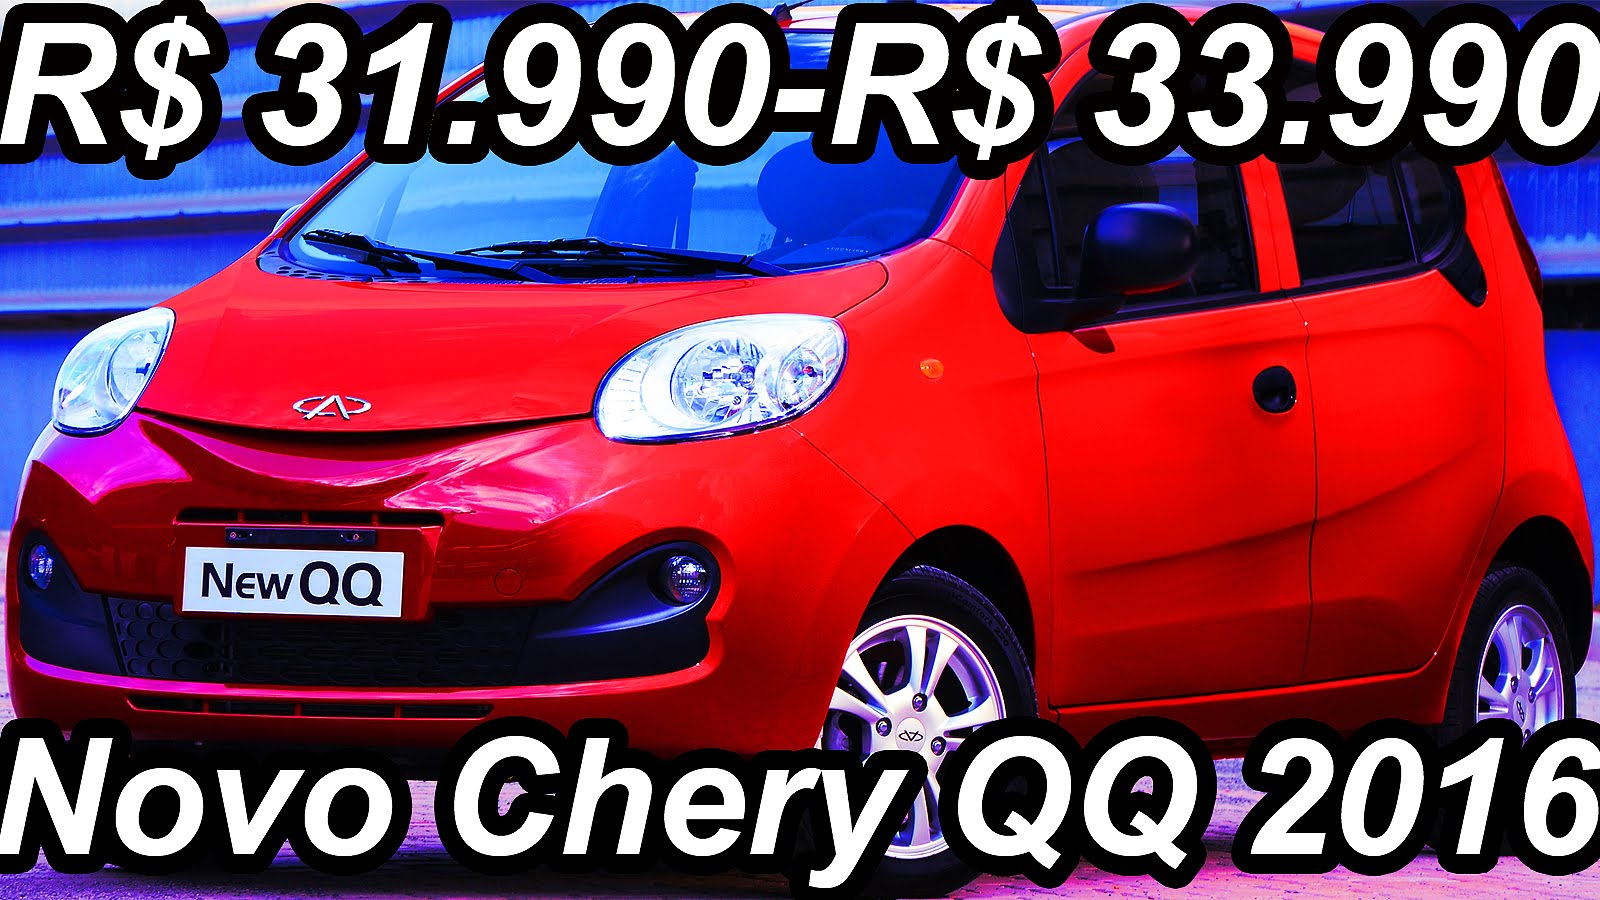 2016 Chery Qq – pictures, information and specs - Auto-Database.com